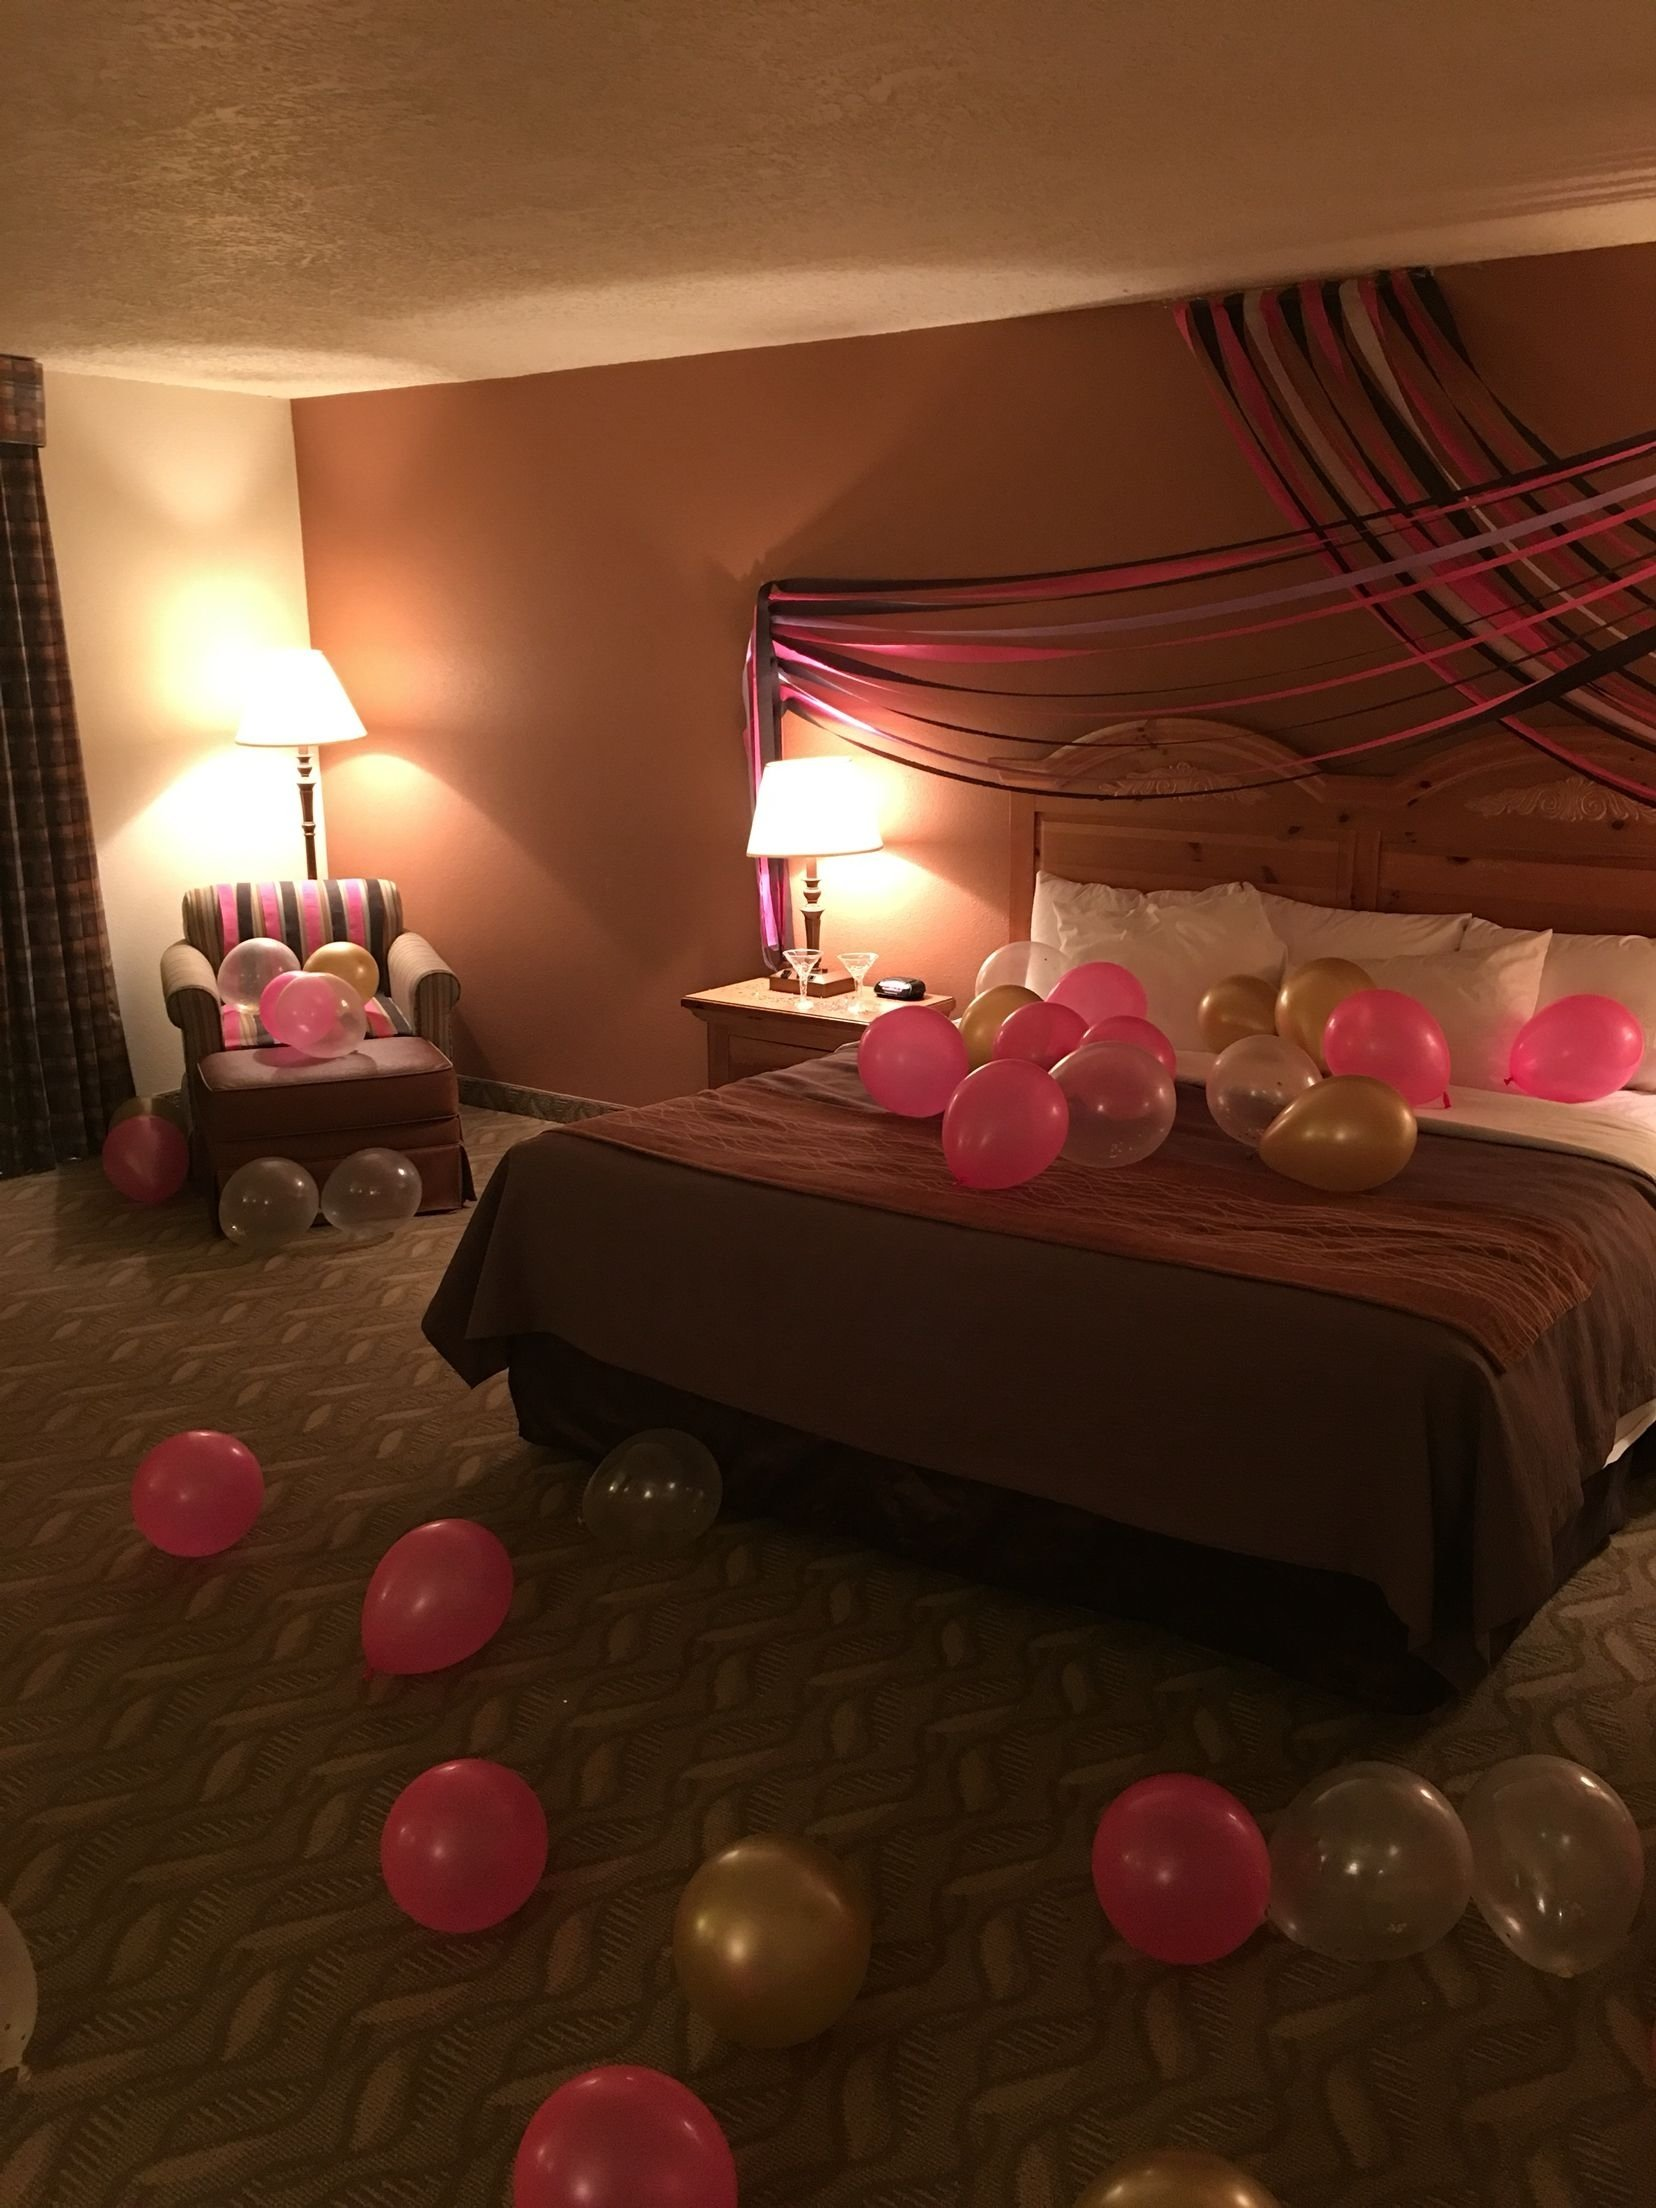 10 Attractive Hotel Party Ideas For Adults surprise birthday hotel decor for my best friend birthday behavior 2020